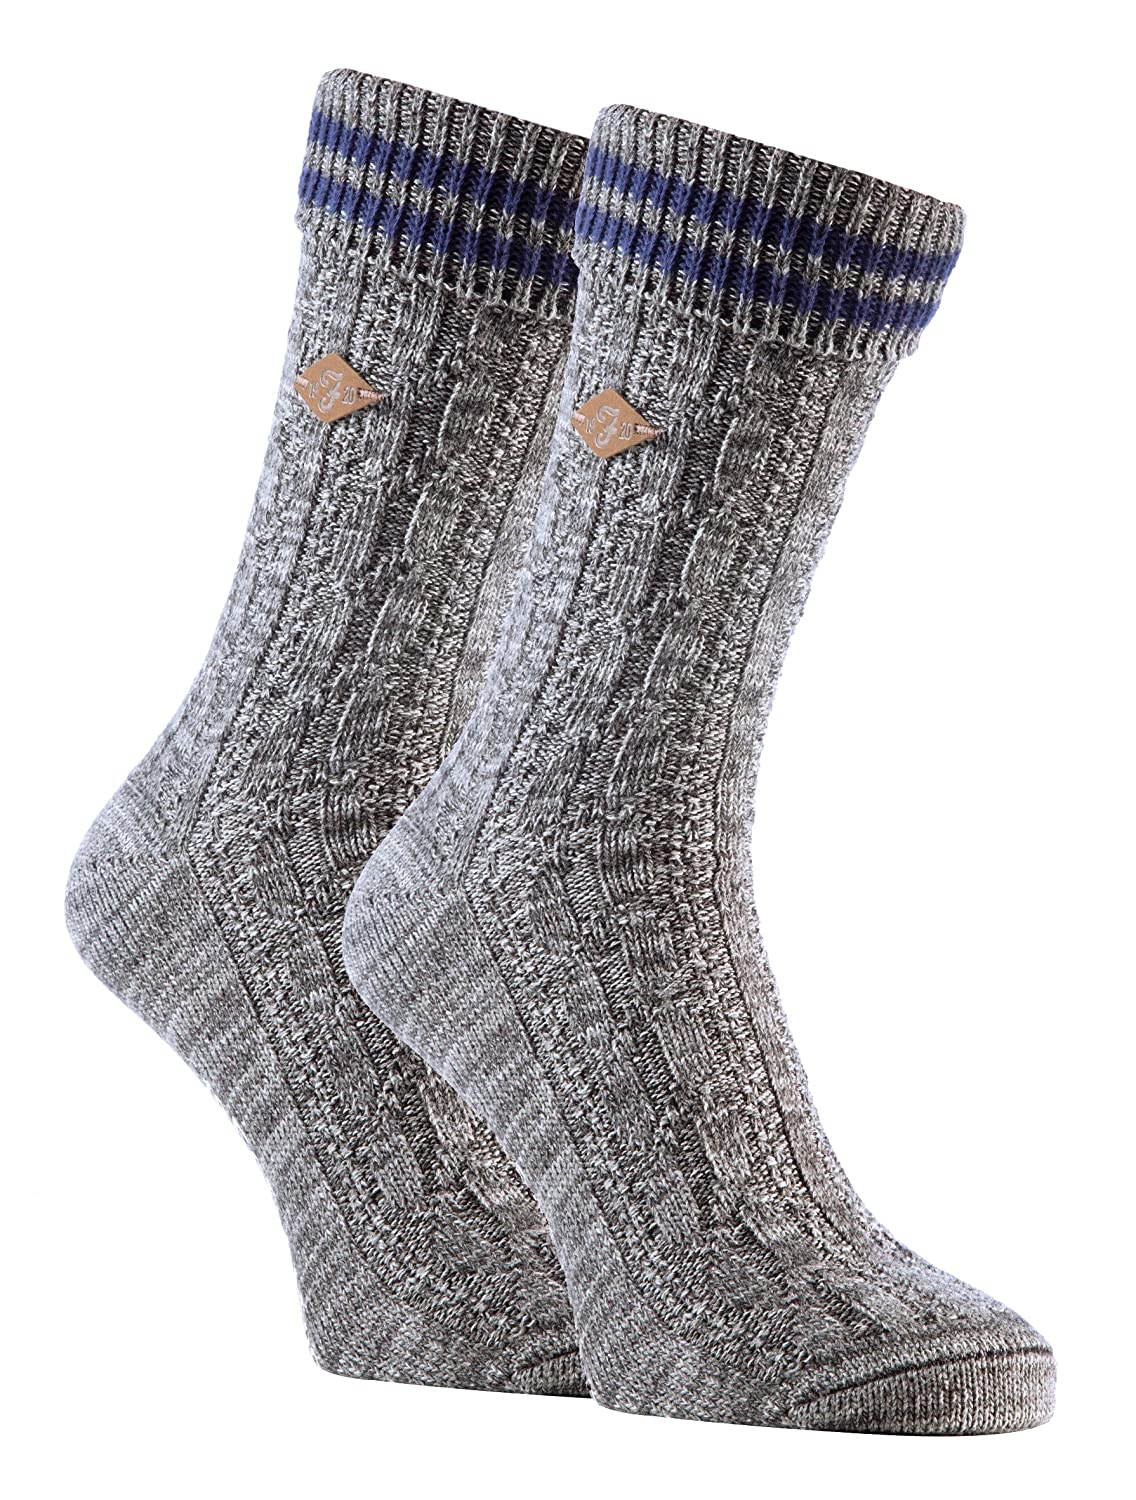 Farah - 2 Pack Mens Thick Chunky Ribbed Cable Knit Cotton Crew Socks for Boots 06 Deep Red / Slate) FNS006